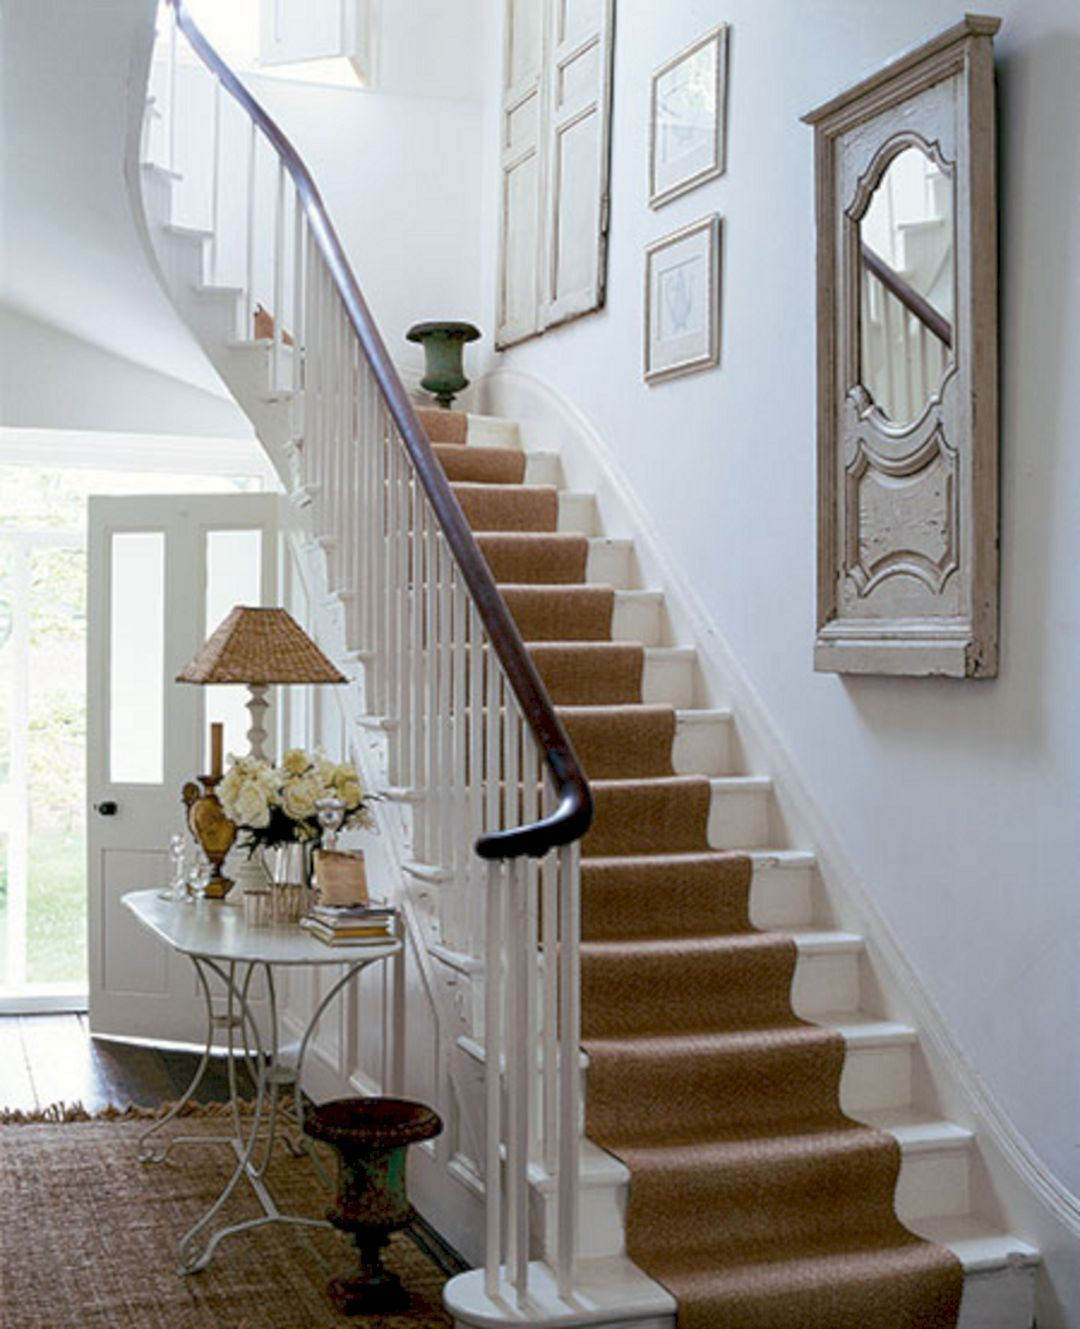 31 Stair Decor Ideas To Make Your Hallway Look Amazing: 65+ Awesome Arranging Pictures On A Stair Wall Ideas